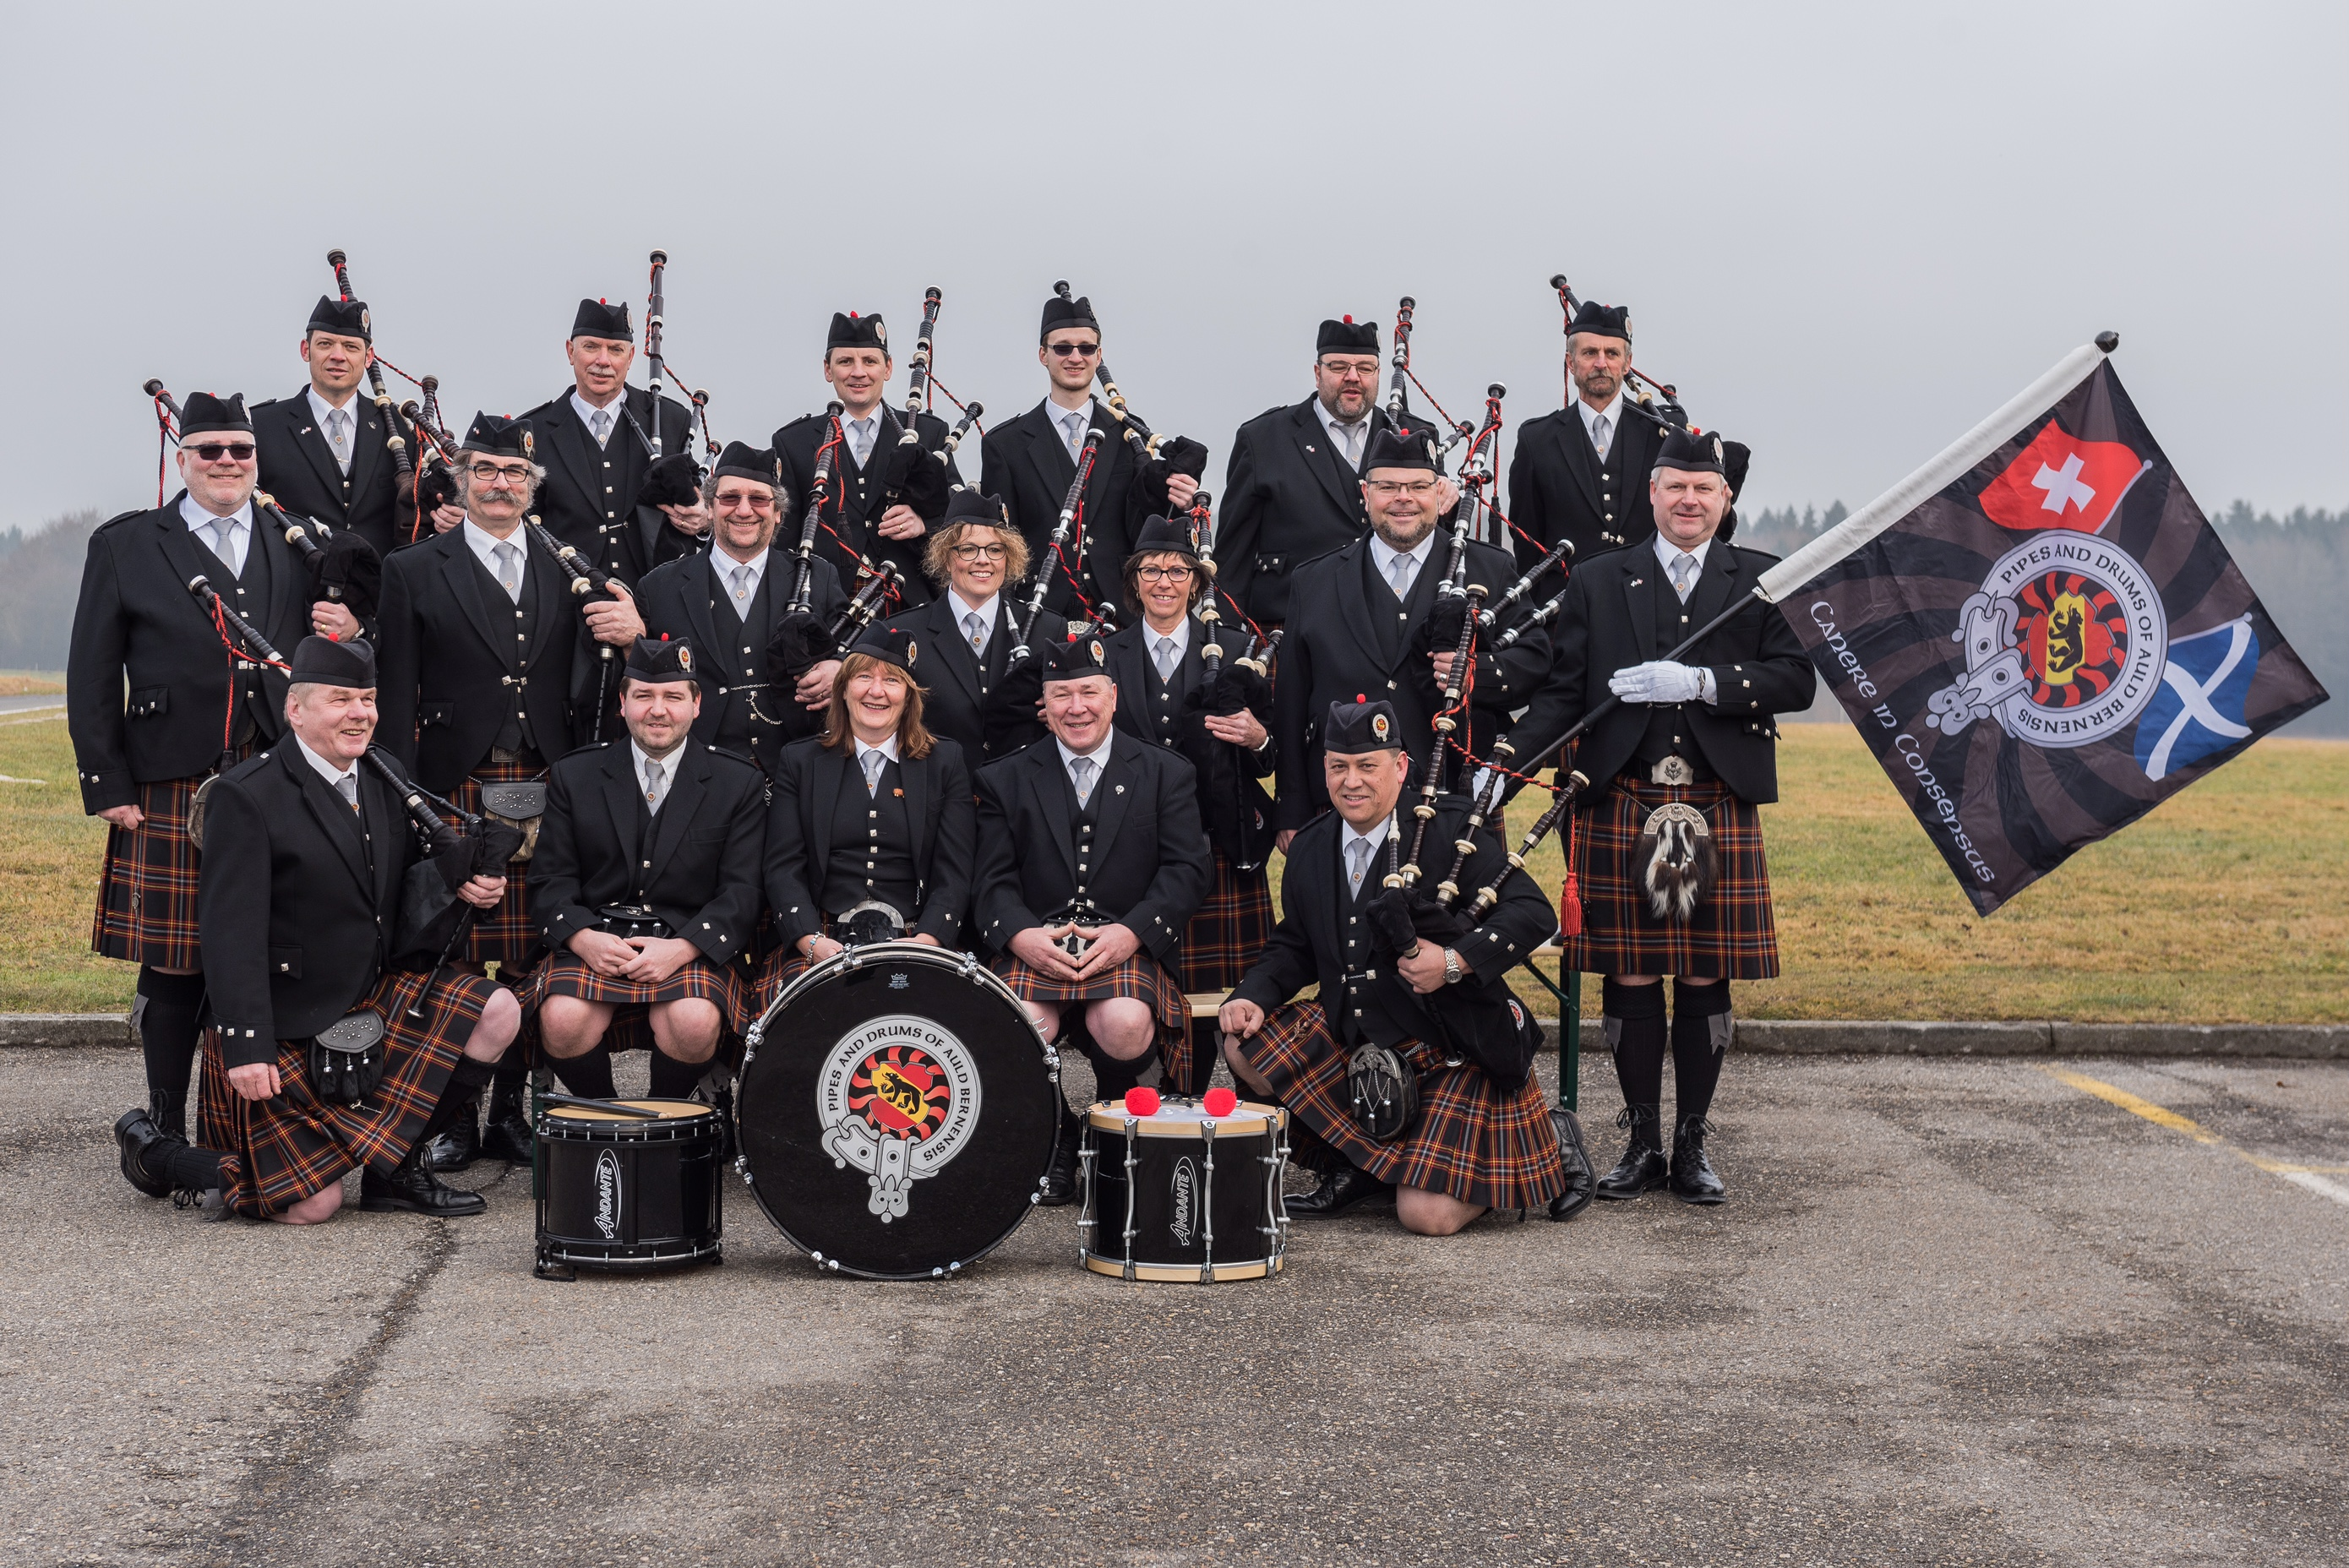 Pipes-and-Drums-auld-Bernensis_Aktiv_1